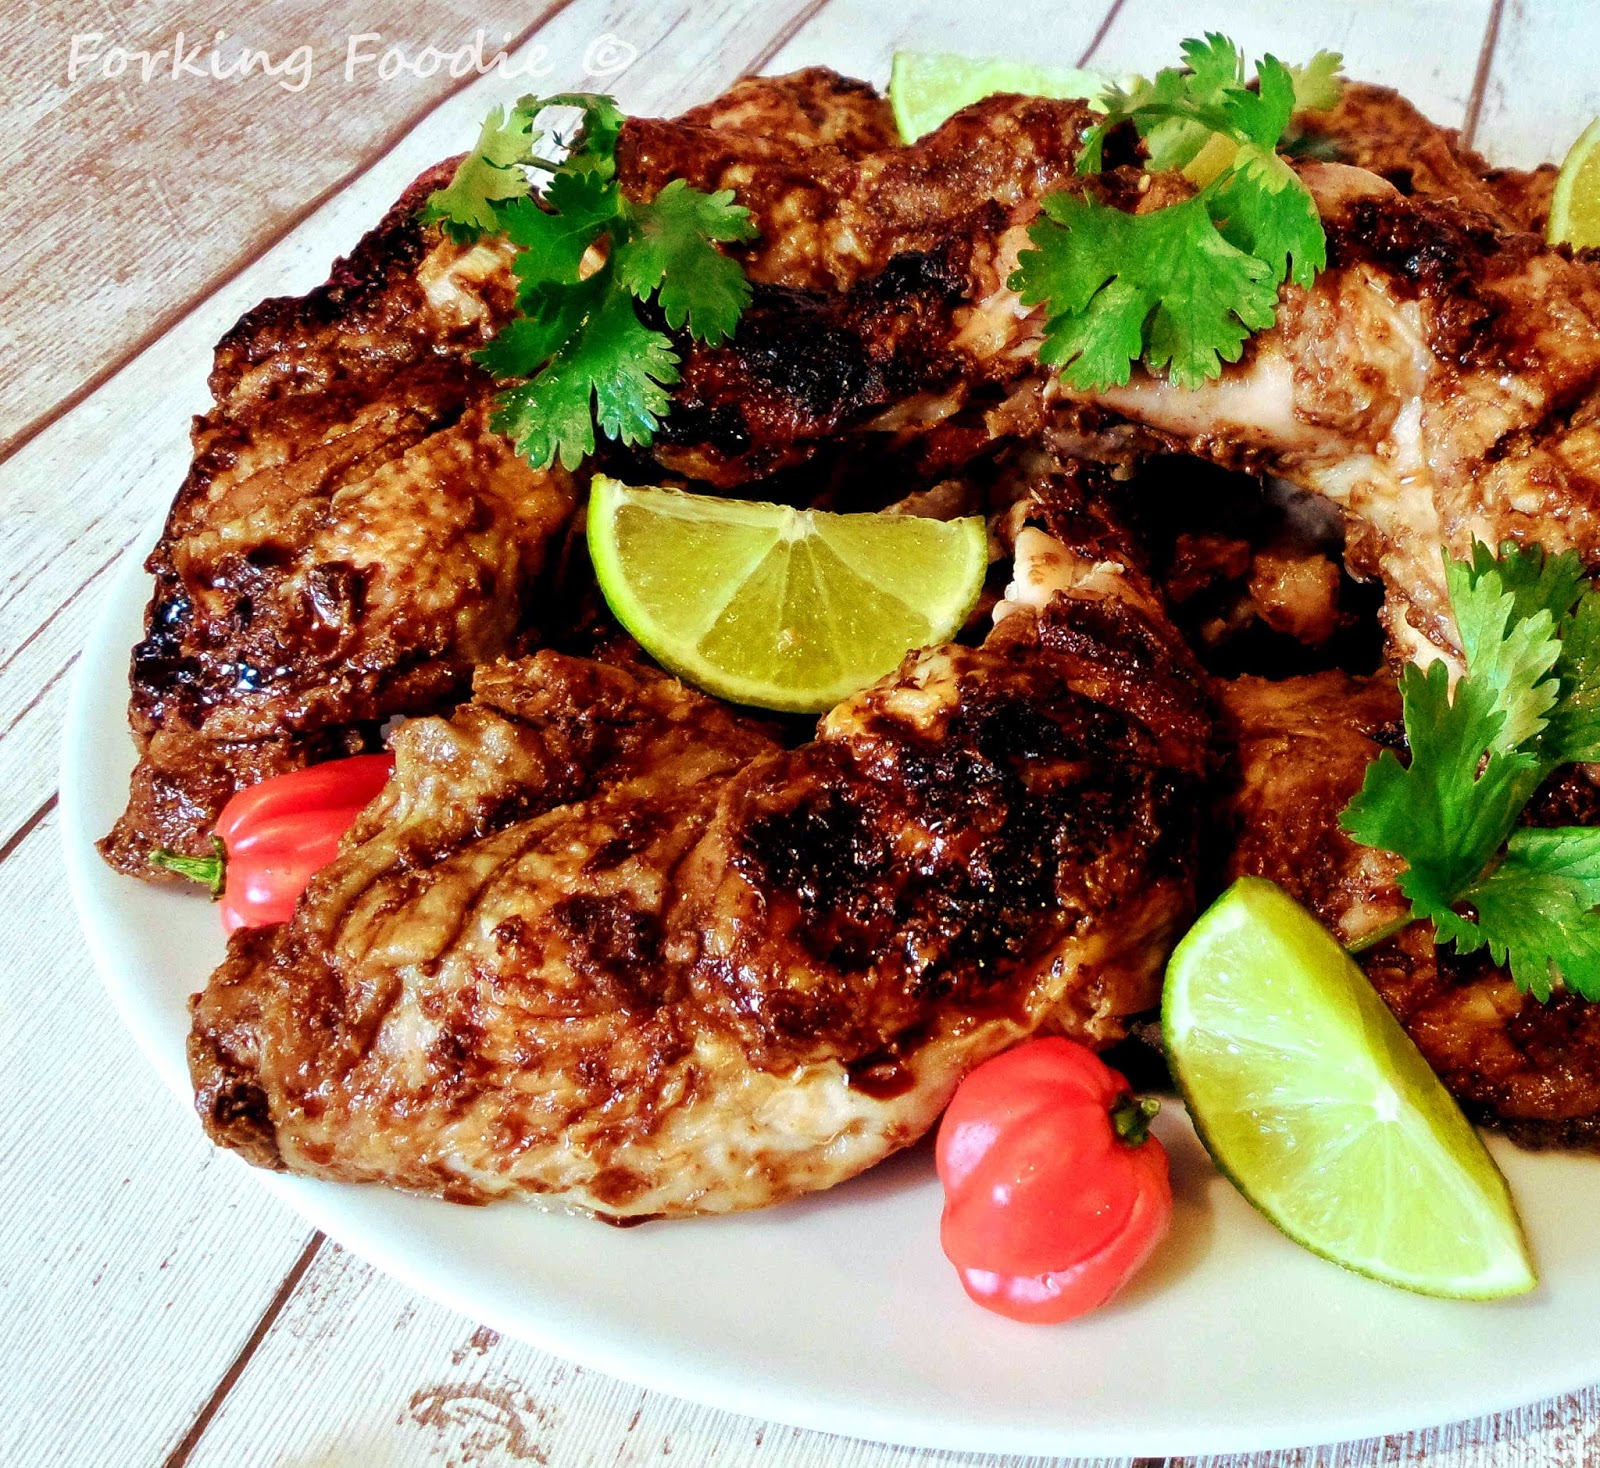 Forking foodie jamaican jerk chicken includes thermomix instructions one of the best known and loved jamaican dishes jerk chicken is quite literally packed full of flavour and brilliant for a barbecue if youre having one forumfinder Choice Image